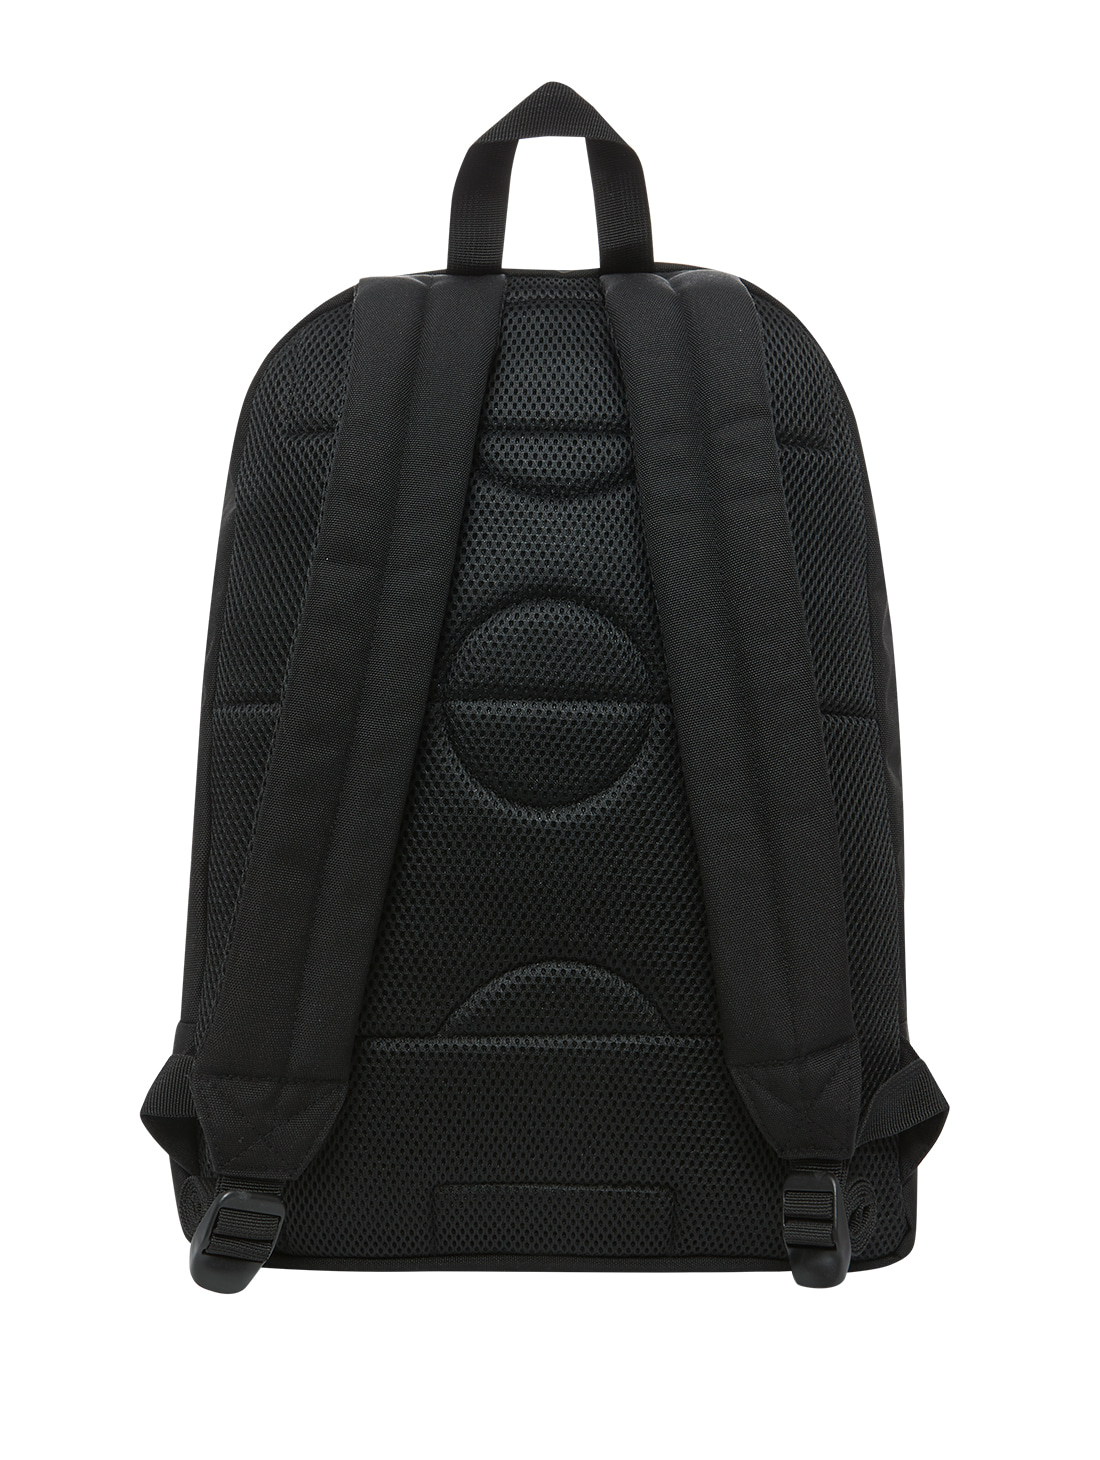 GOAL TAPE BACKPACK - BLACK